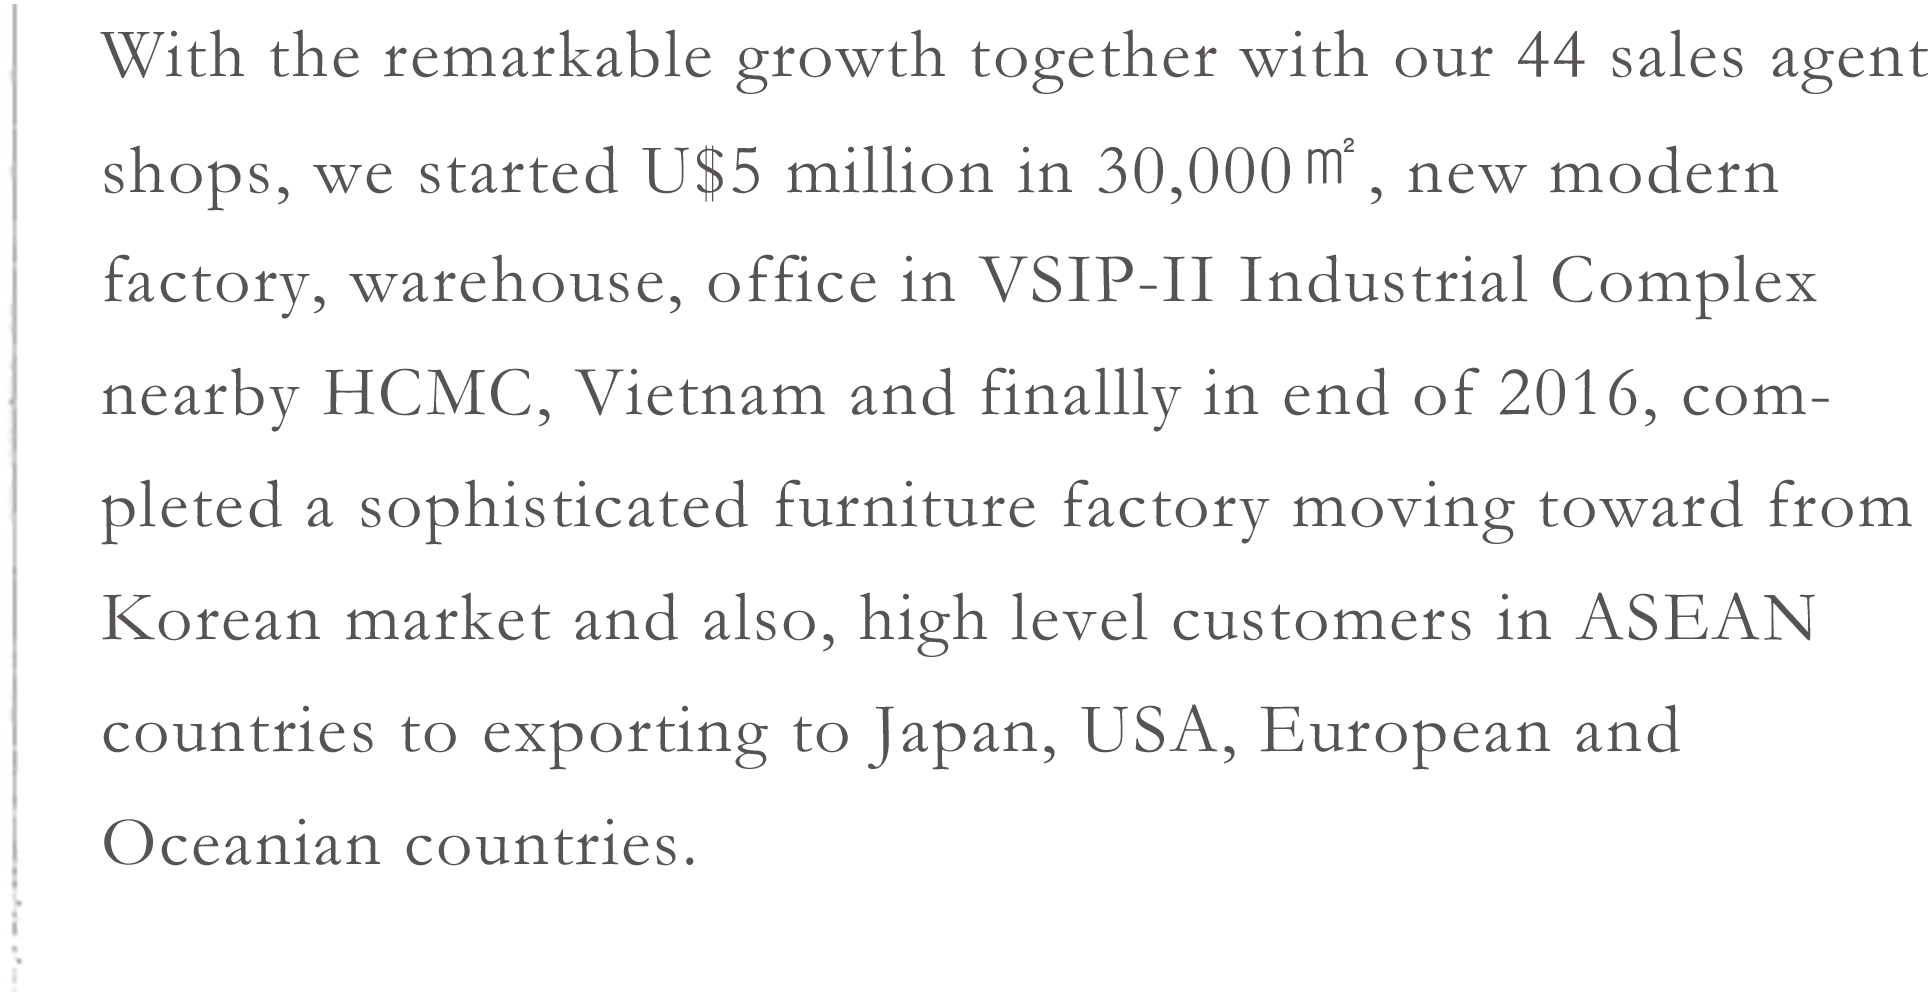 With the remarkable growth together with our 44 sales agent shops, we started U$5 million in 30,000㎡, new modern factory, warehouse, office in VSIP-II Industrial Complex nearby HCMC, Vietnam and finallly in end of 2016, completed a sophisticated furniture factory moving toward from Korean market and also, high level customers in ASEAN countries to exporting to Japan, USA, European and Oceanian countries.